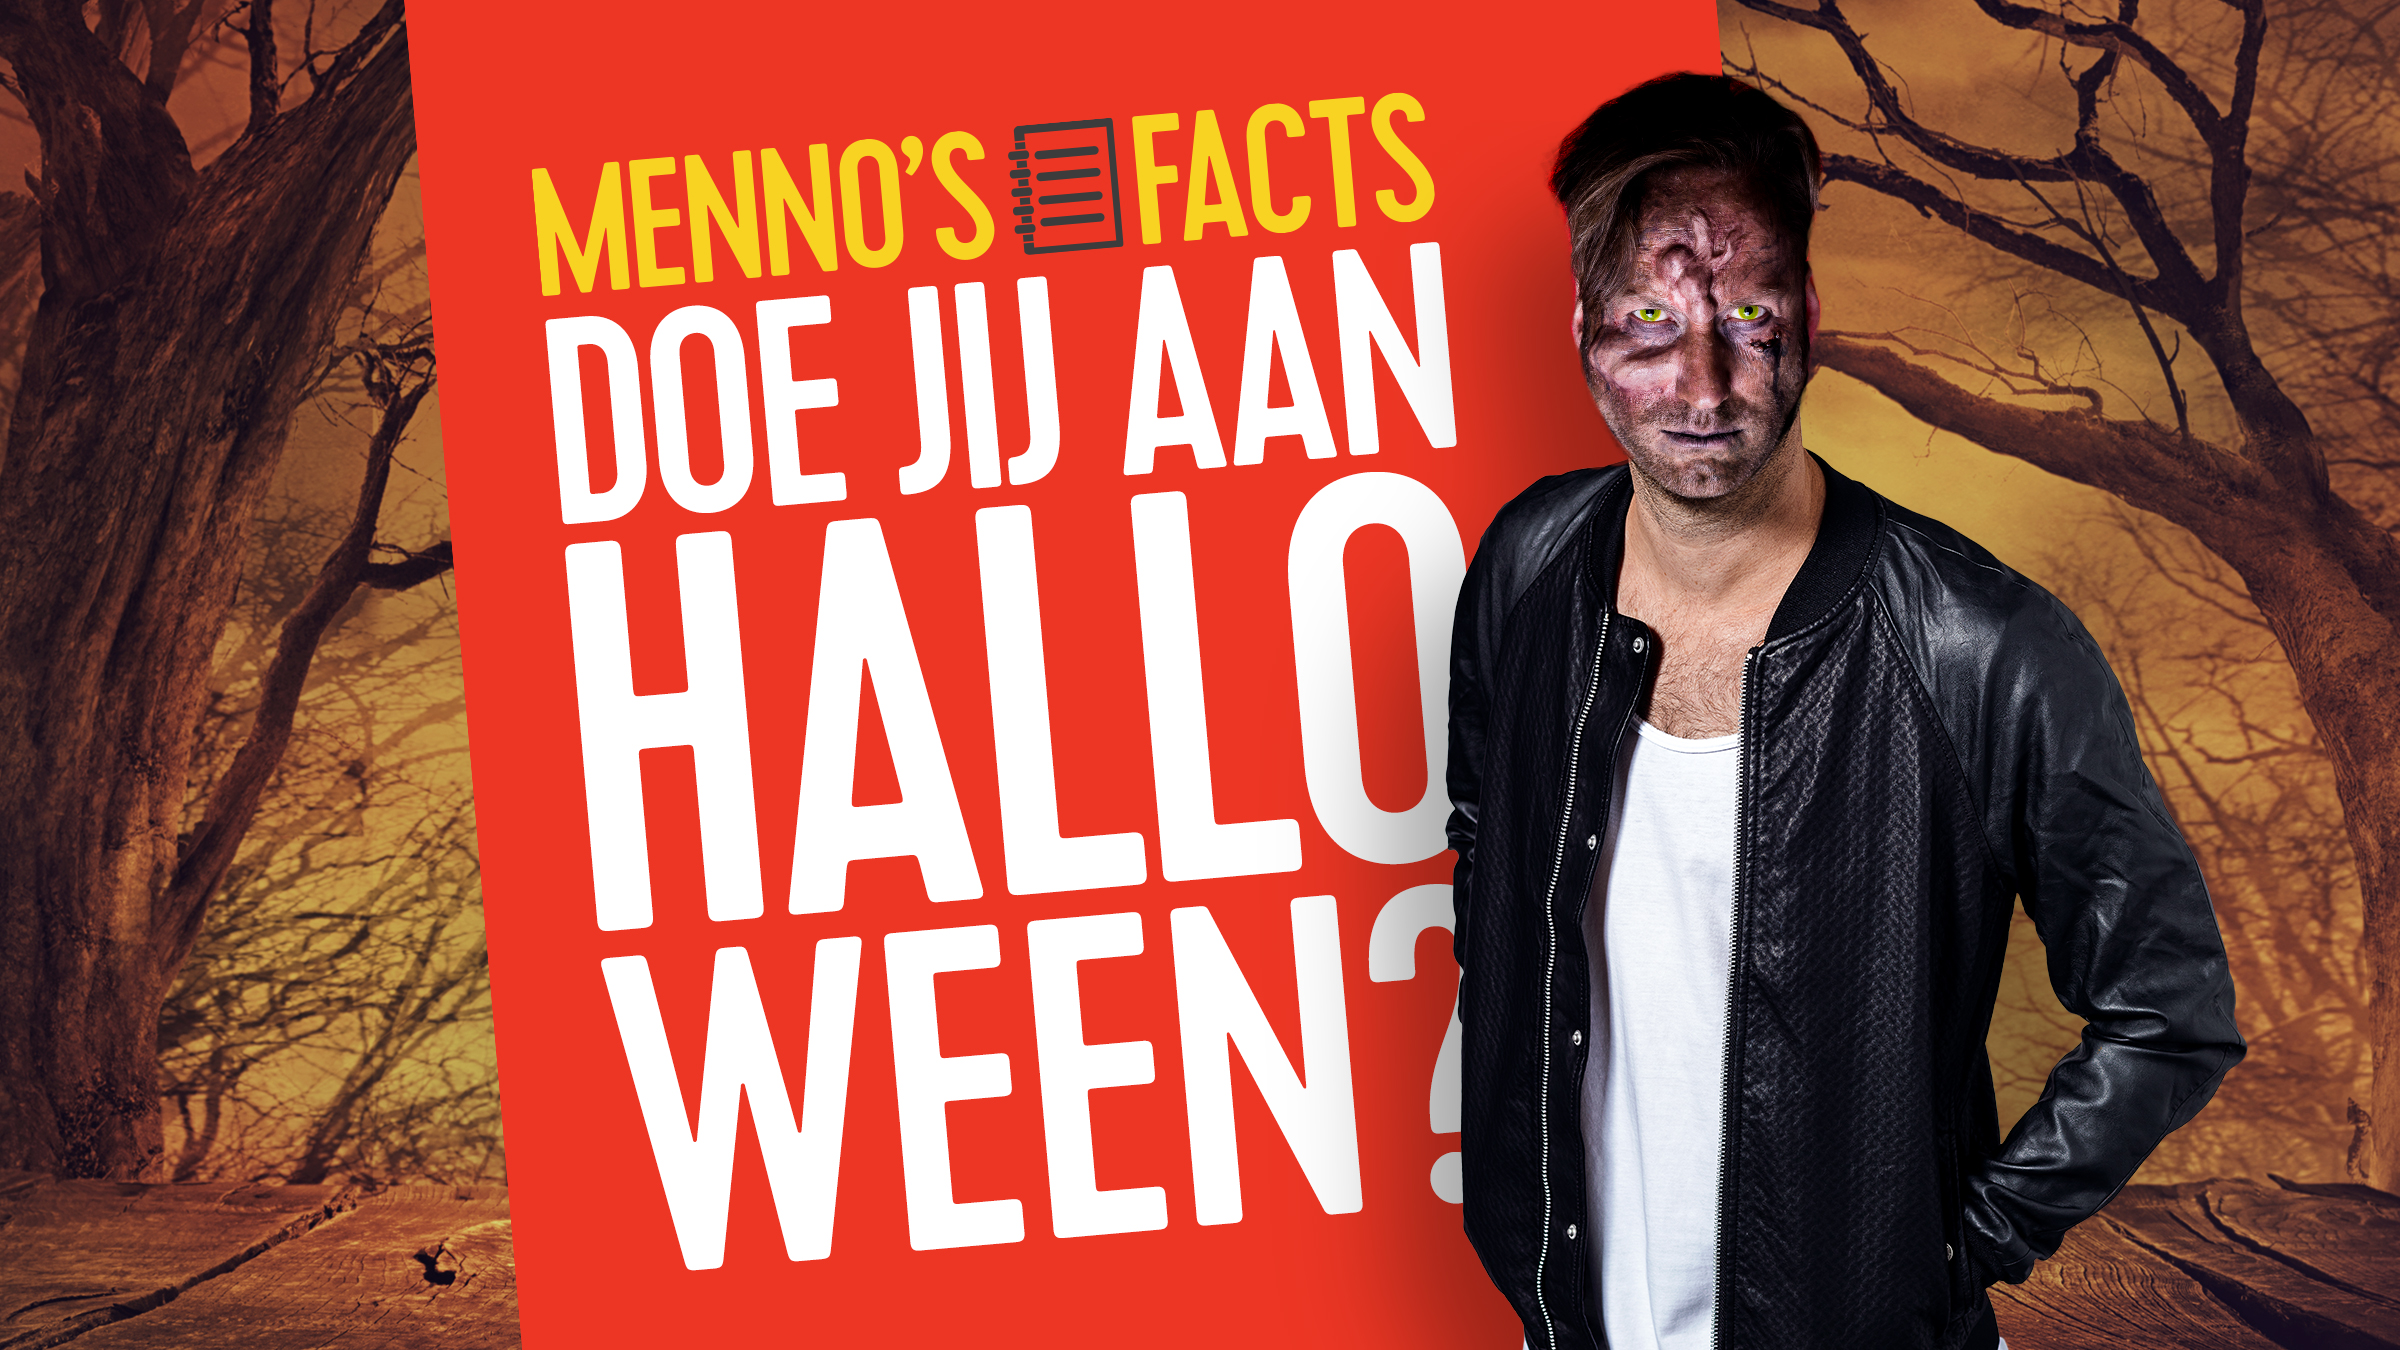 Halloween teaser basis mennosfacts17